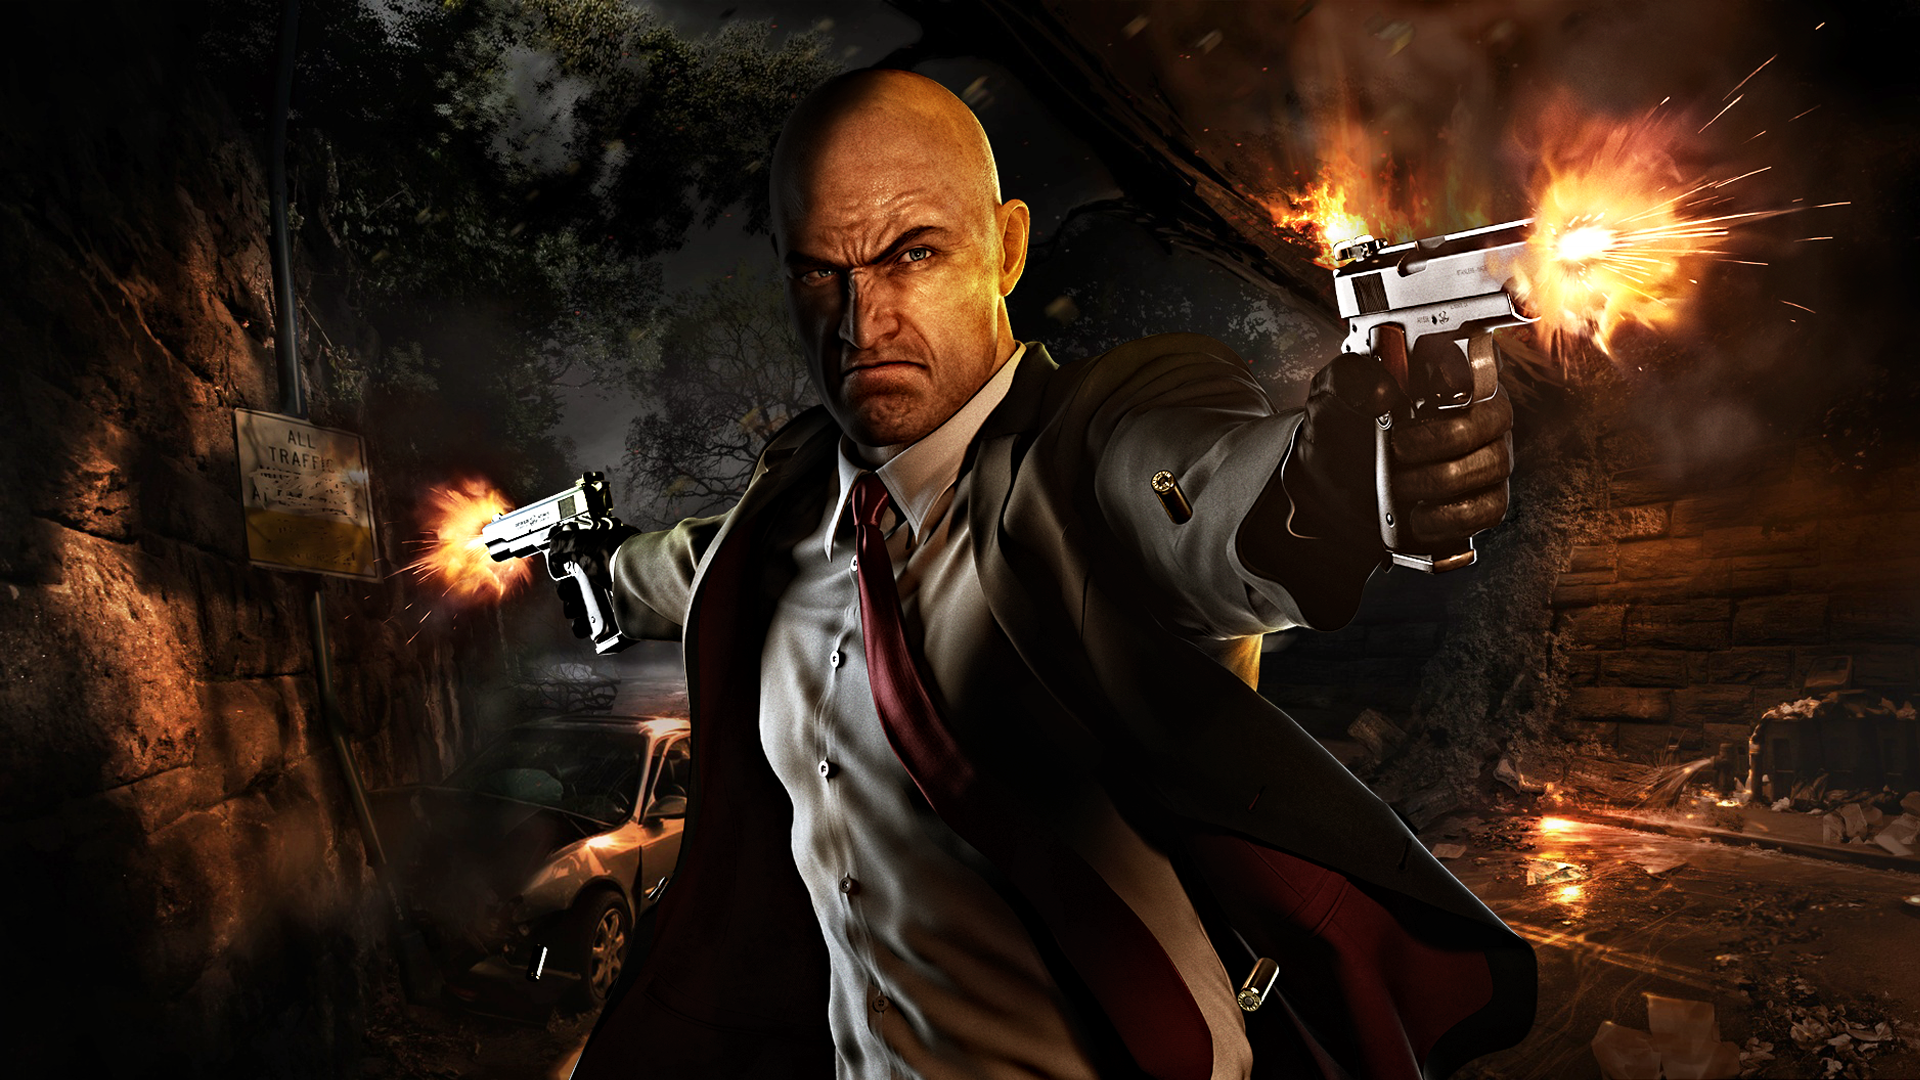 image - hitman-absolution-wallpaper-hd-1080p2 | heroism wiki